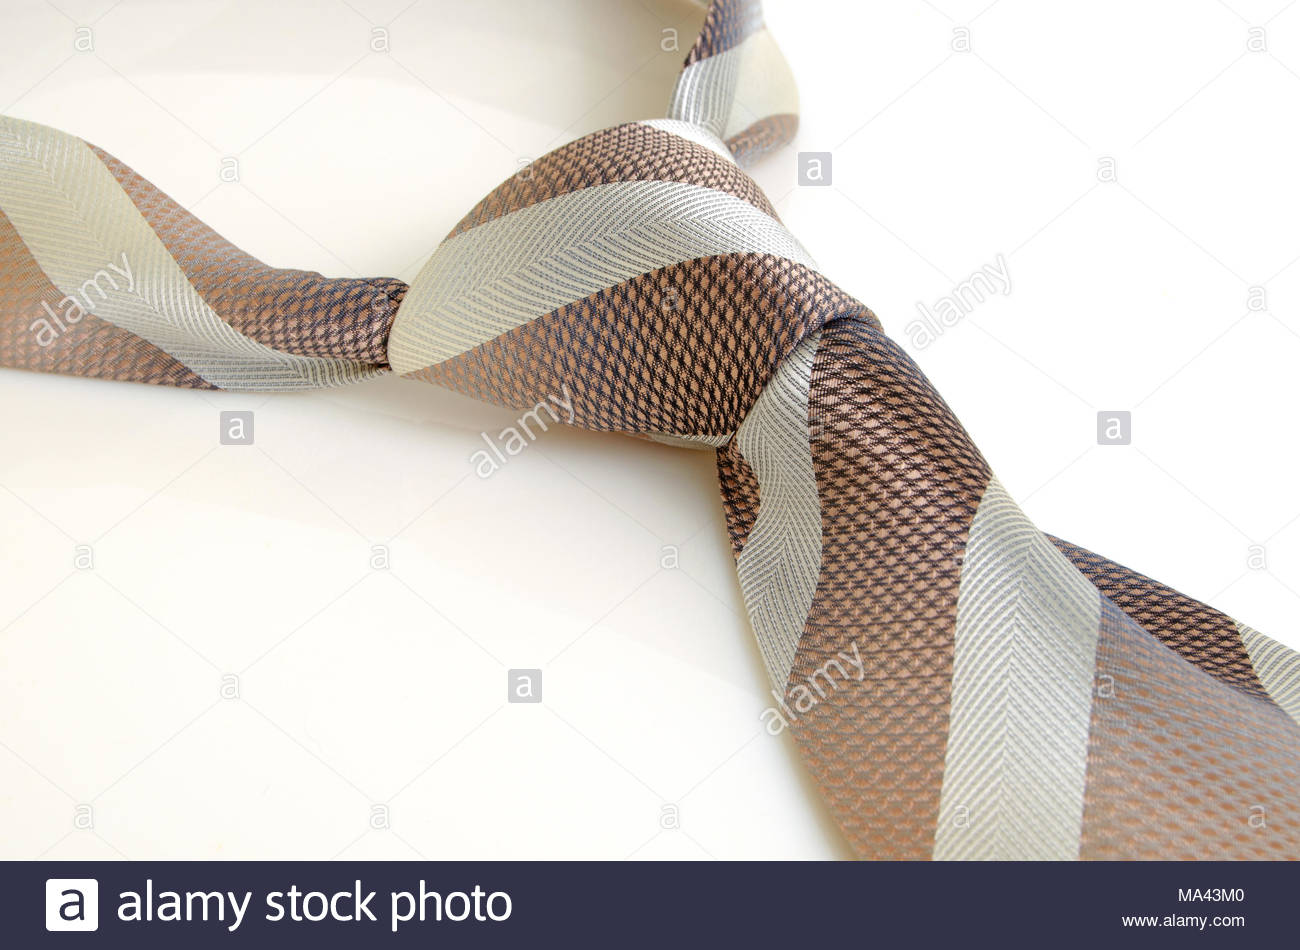 Wide tie with diagonal stripe on a light background. - Stock Image